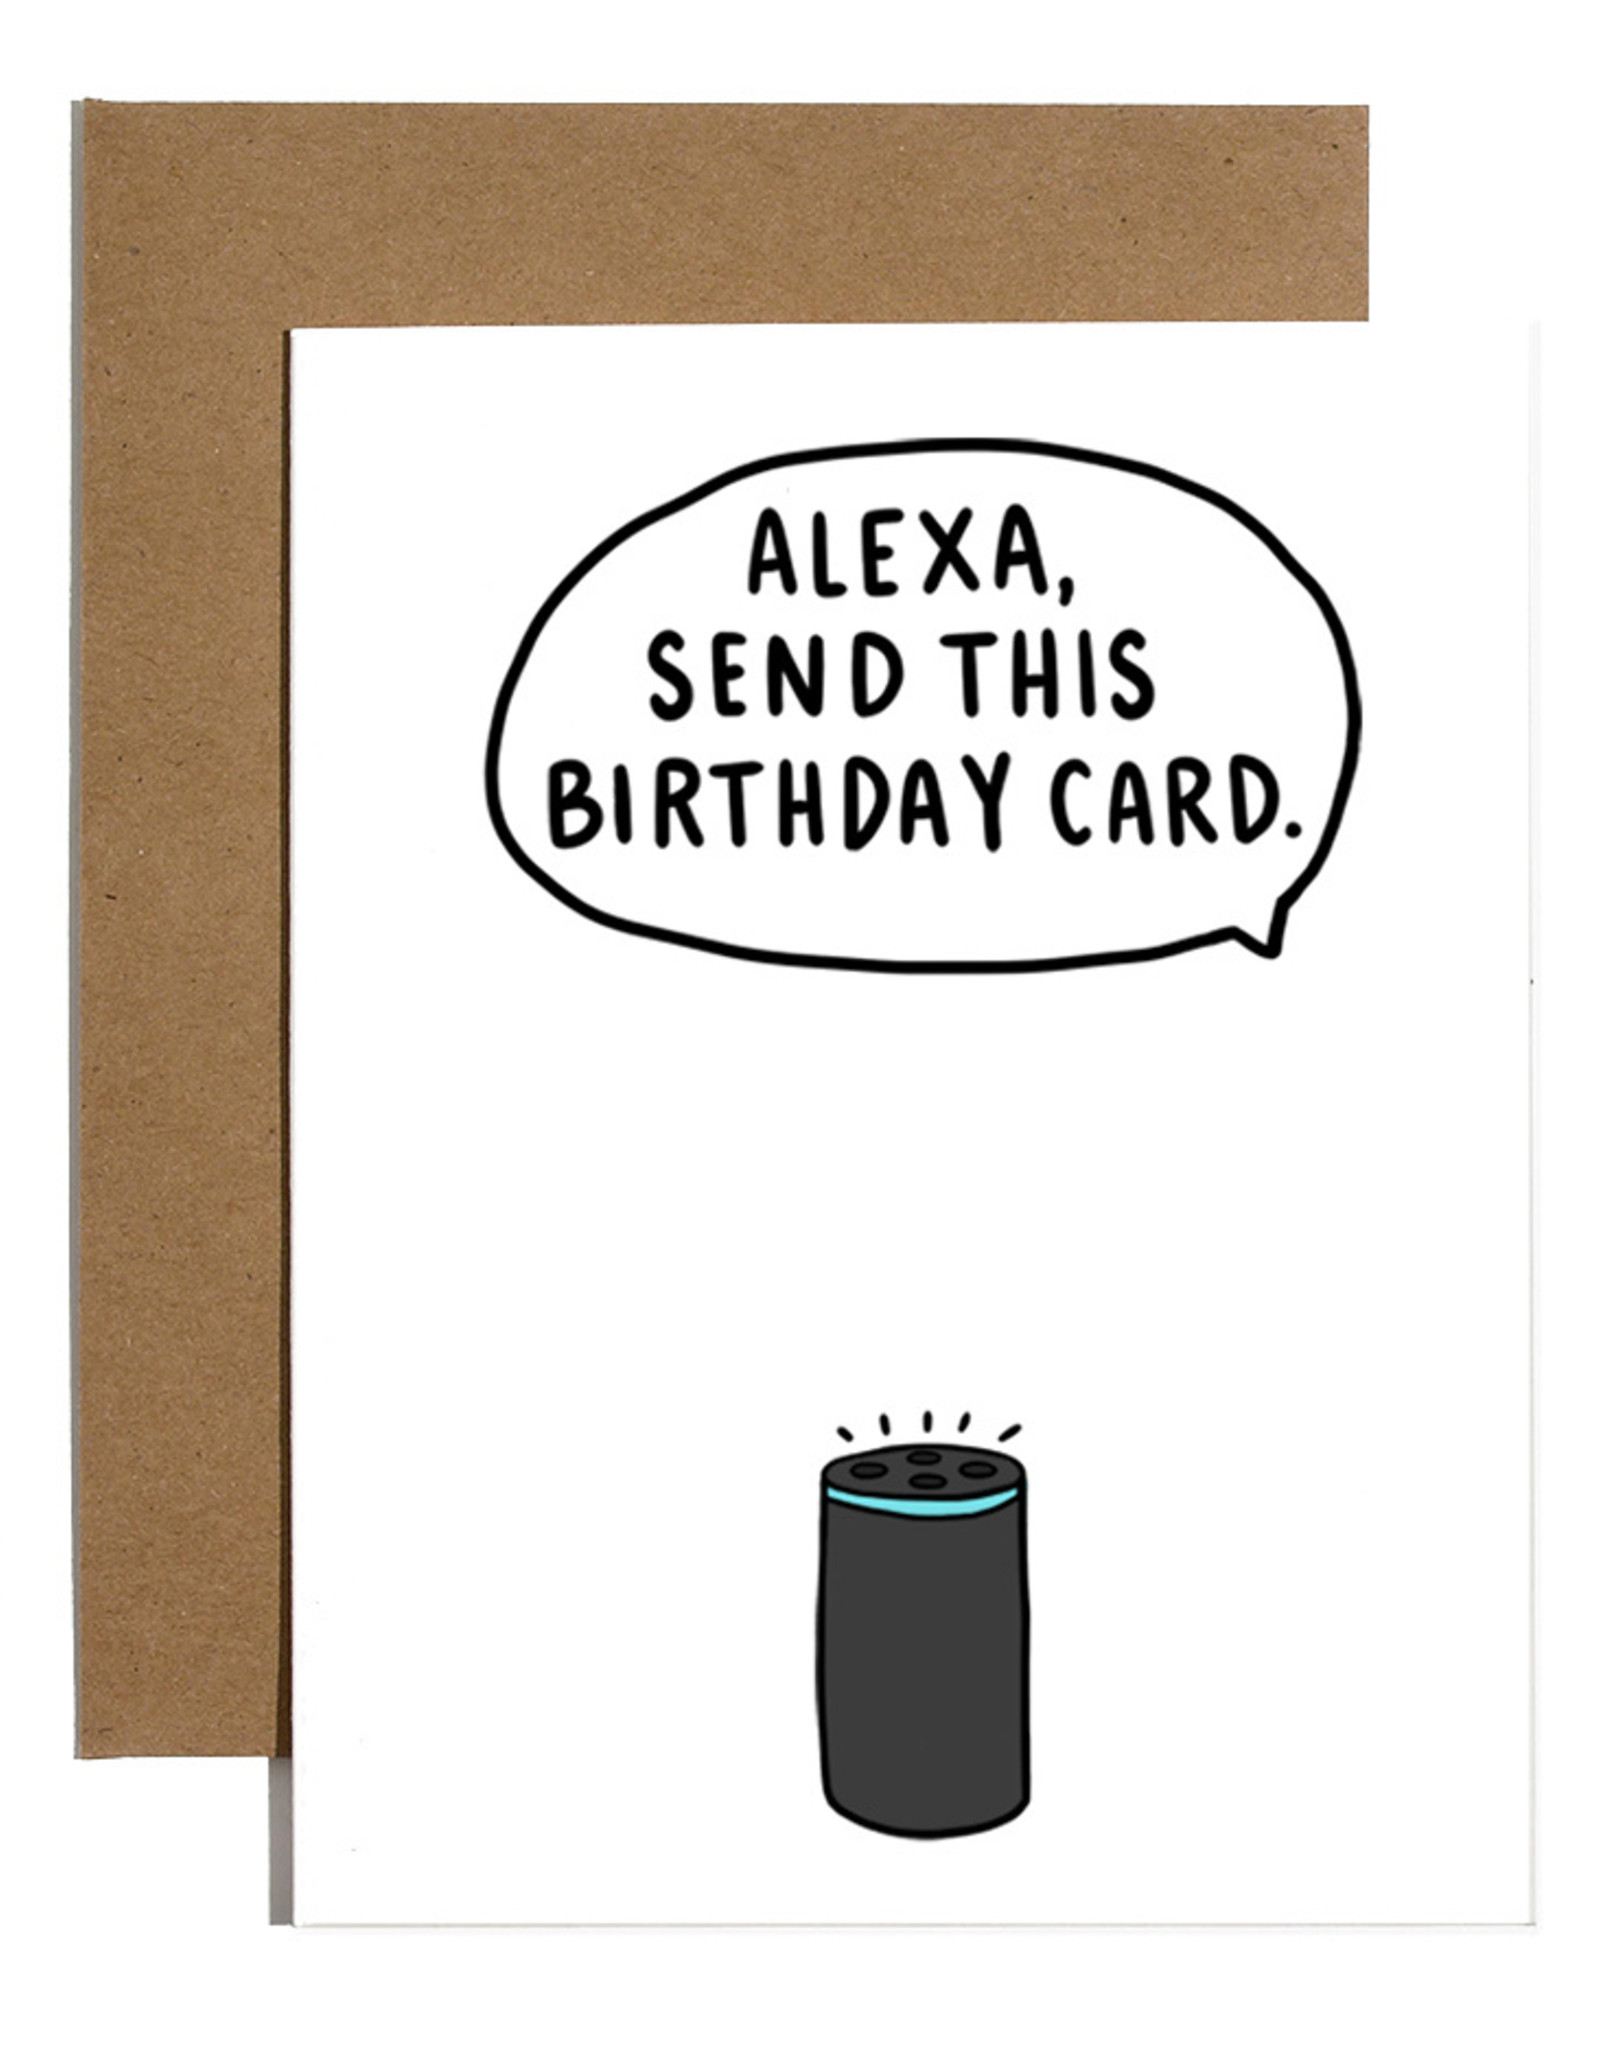 Brittany Paige Card - Birthday: Alexa send this card